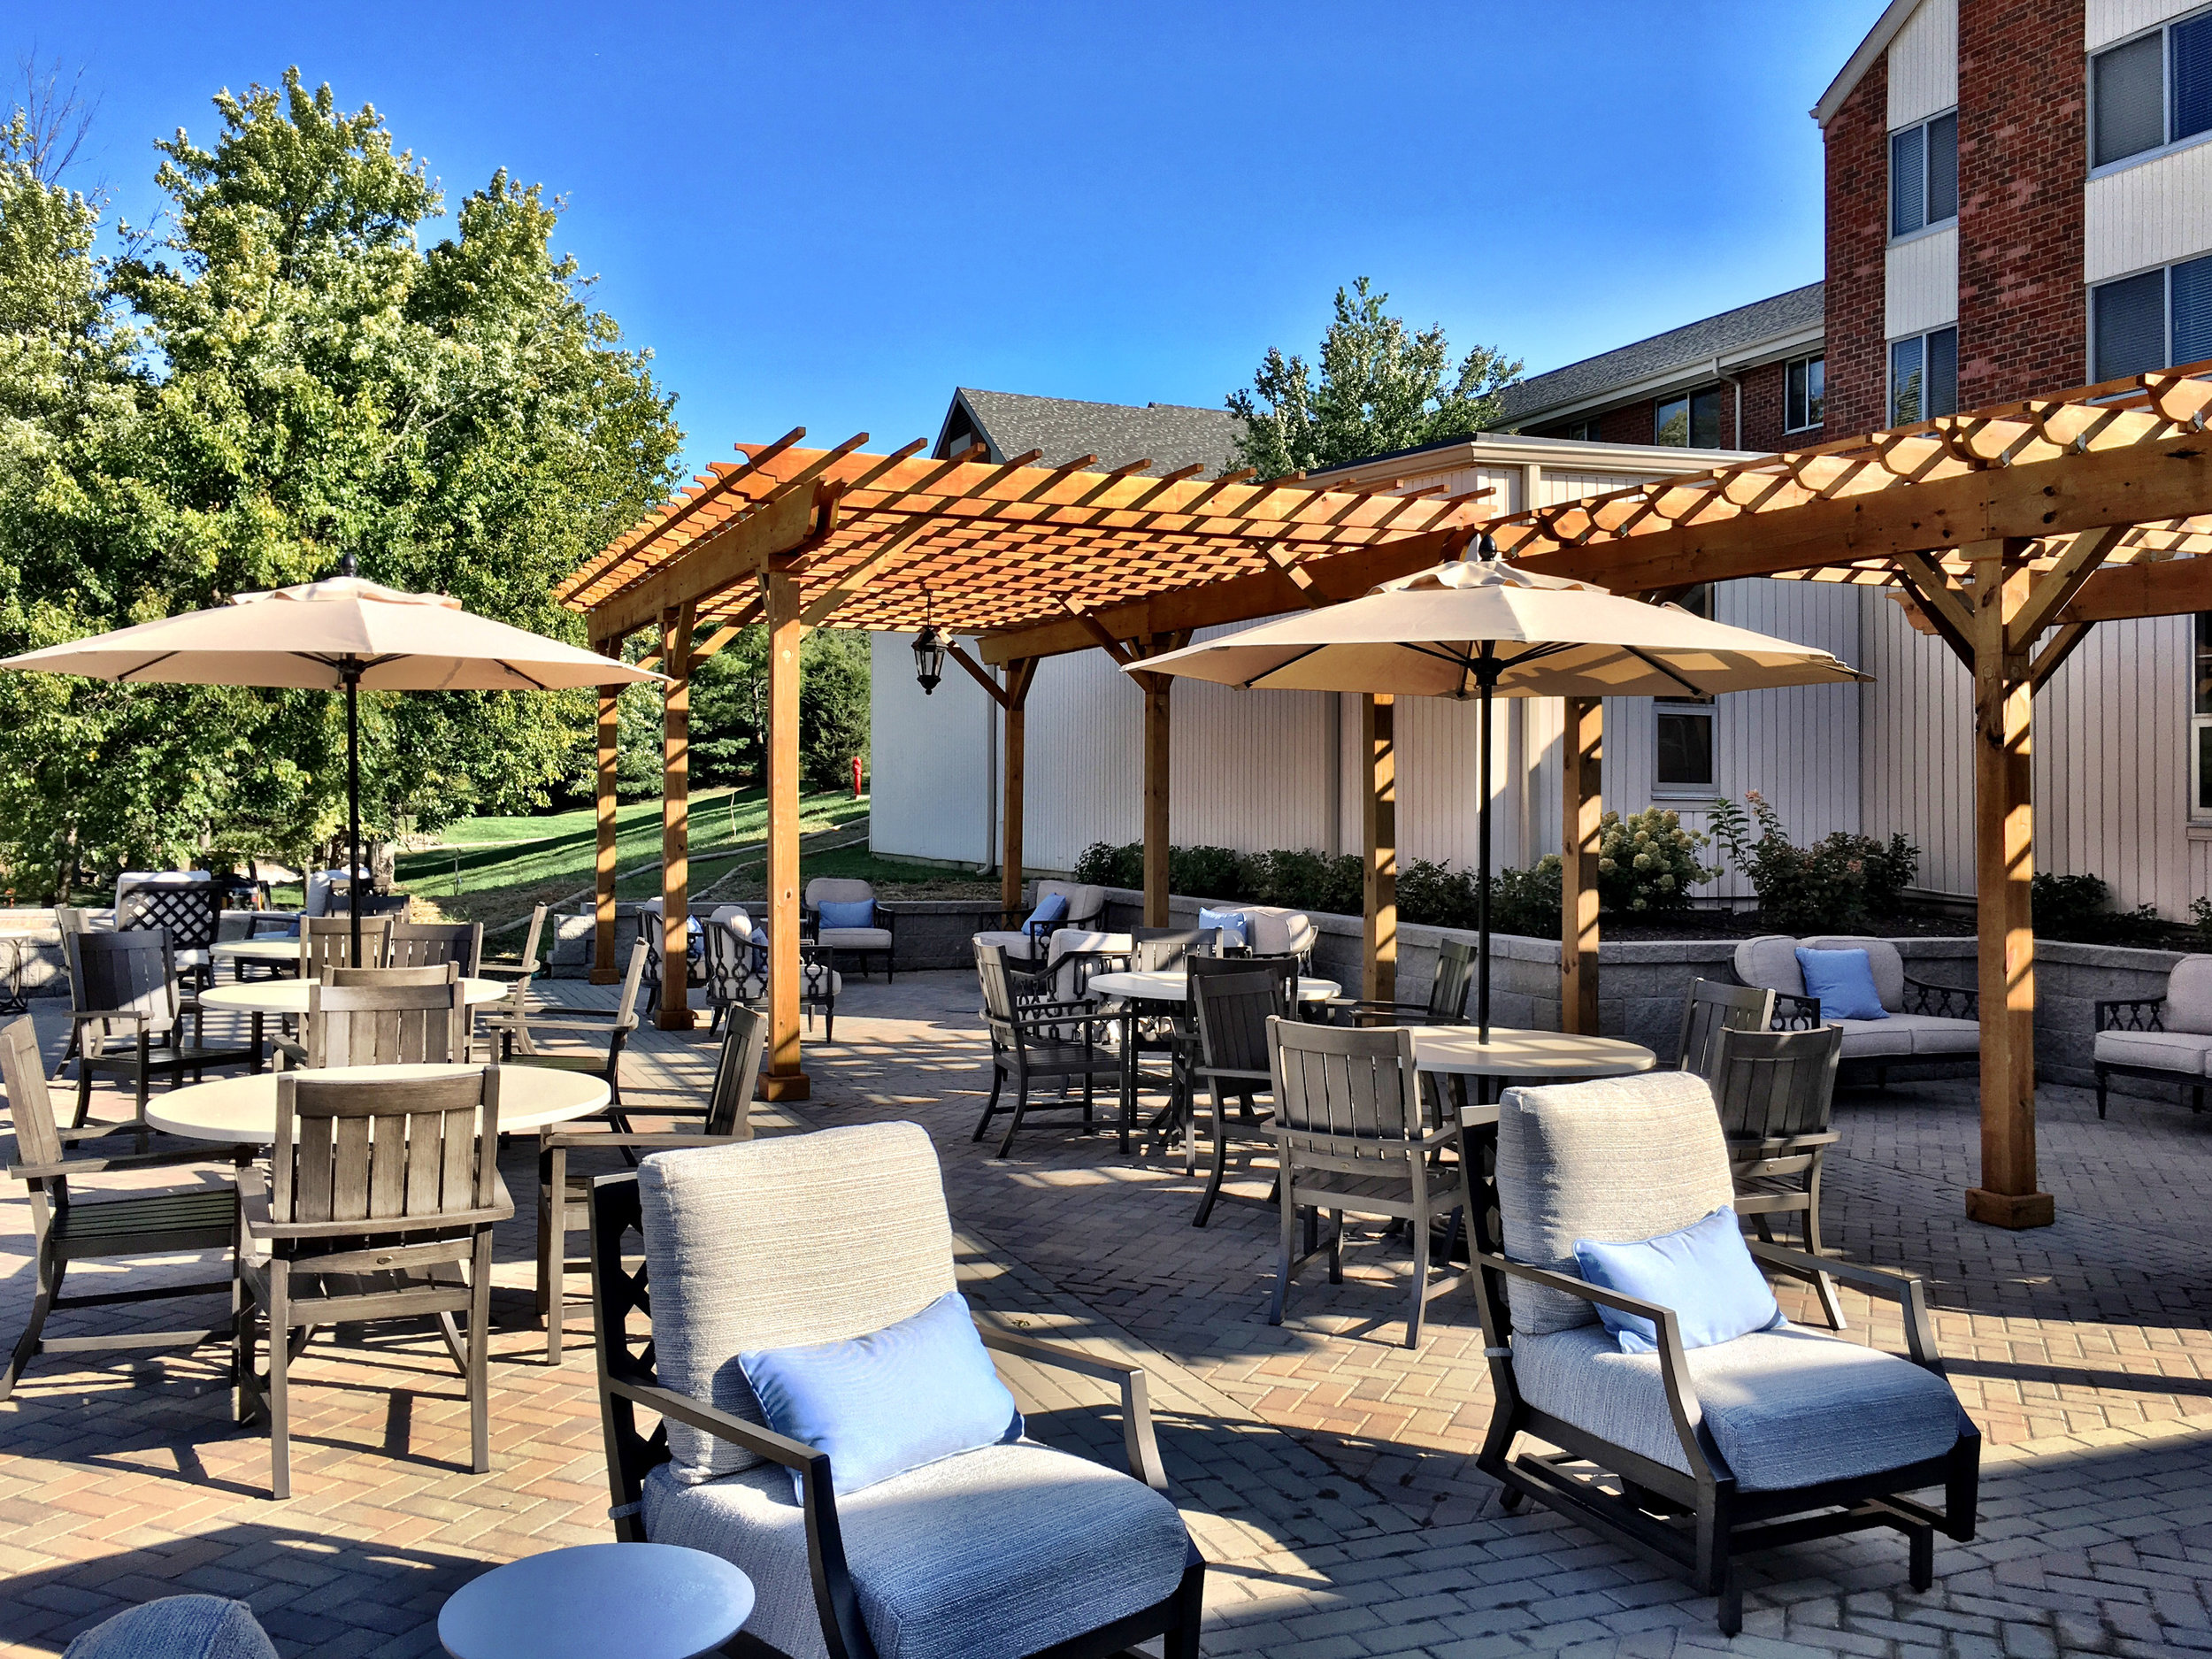 Gambrill Gardens Patio Lounge 2.JPG